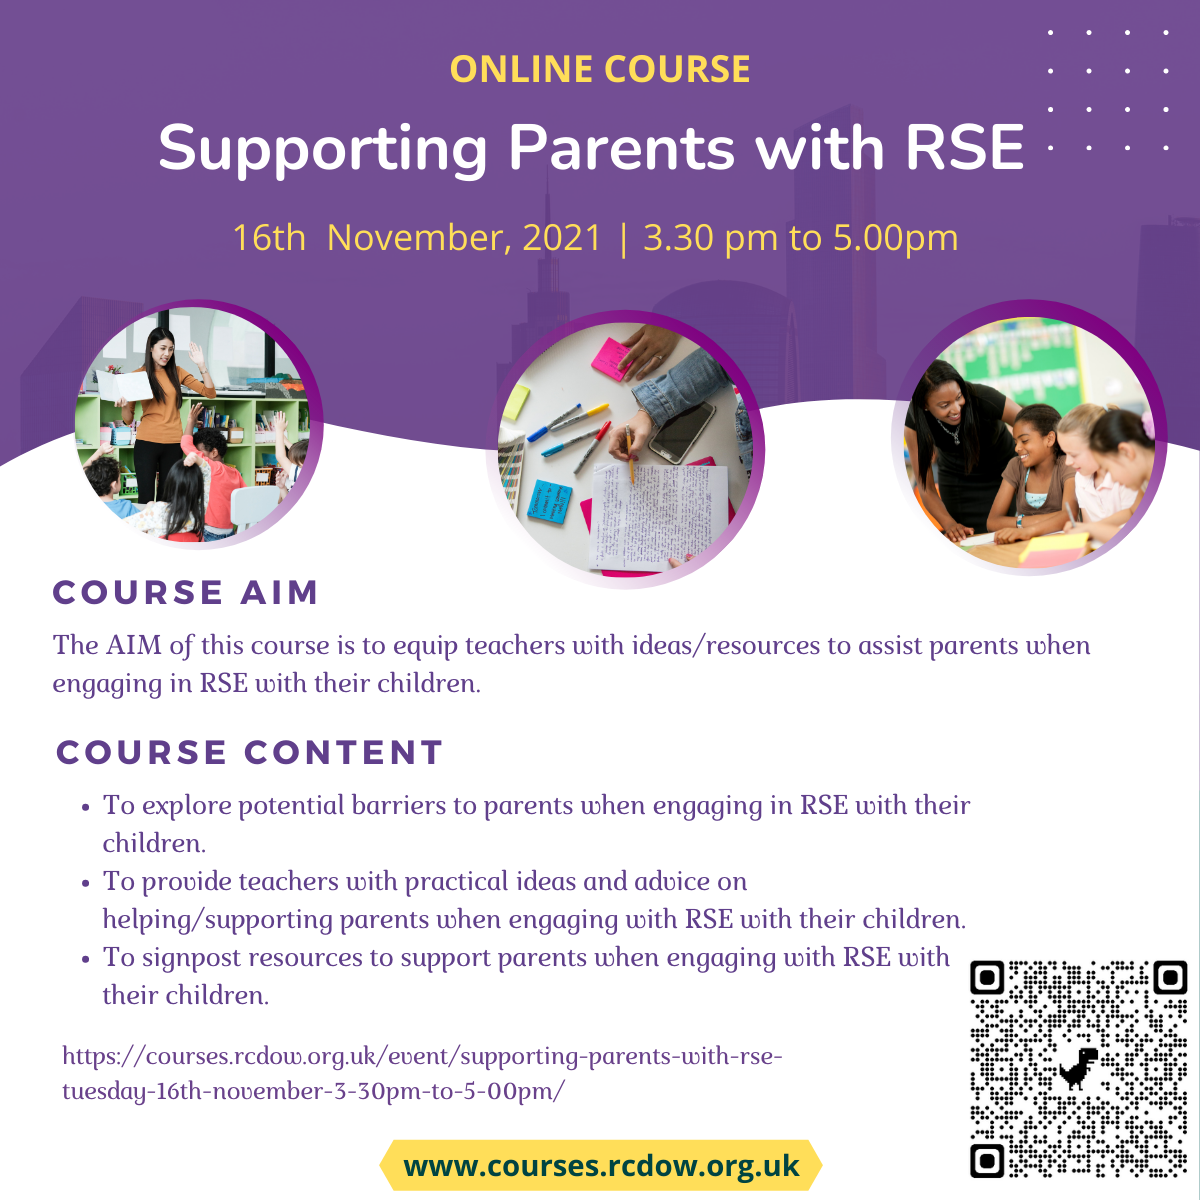 Supporting Parents with RSE 16 11 21